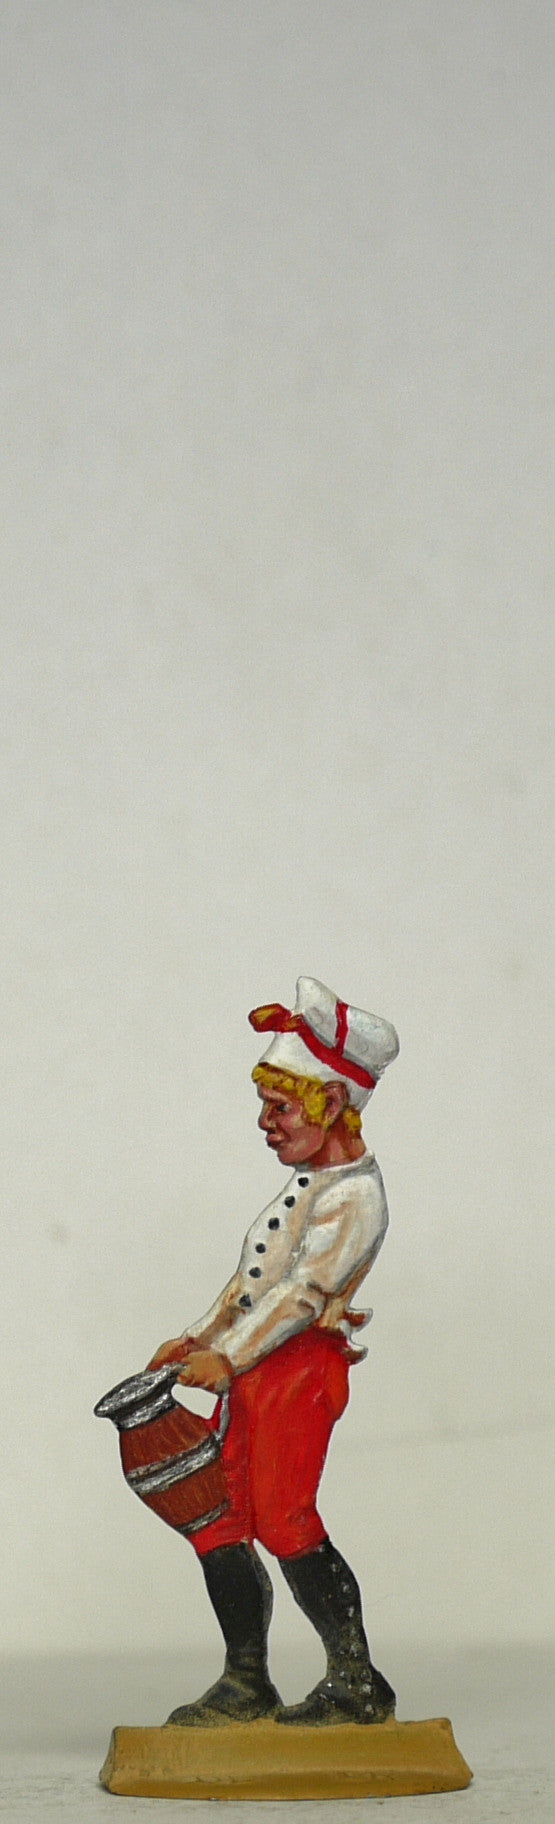 boy carrying hero's tipple - Glorious Empires-Historical Miniatures